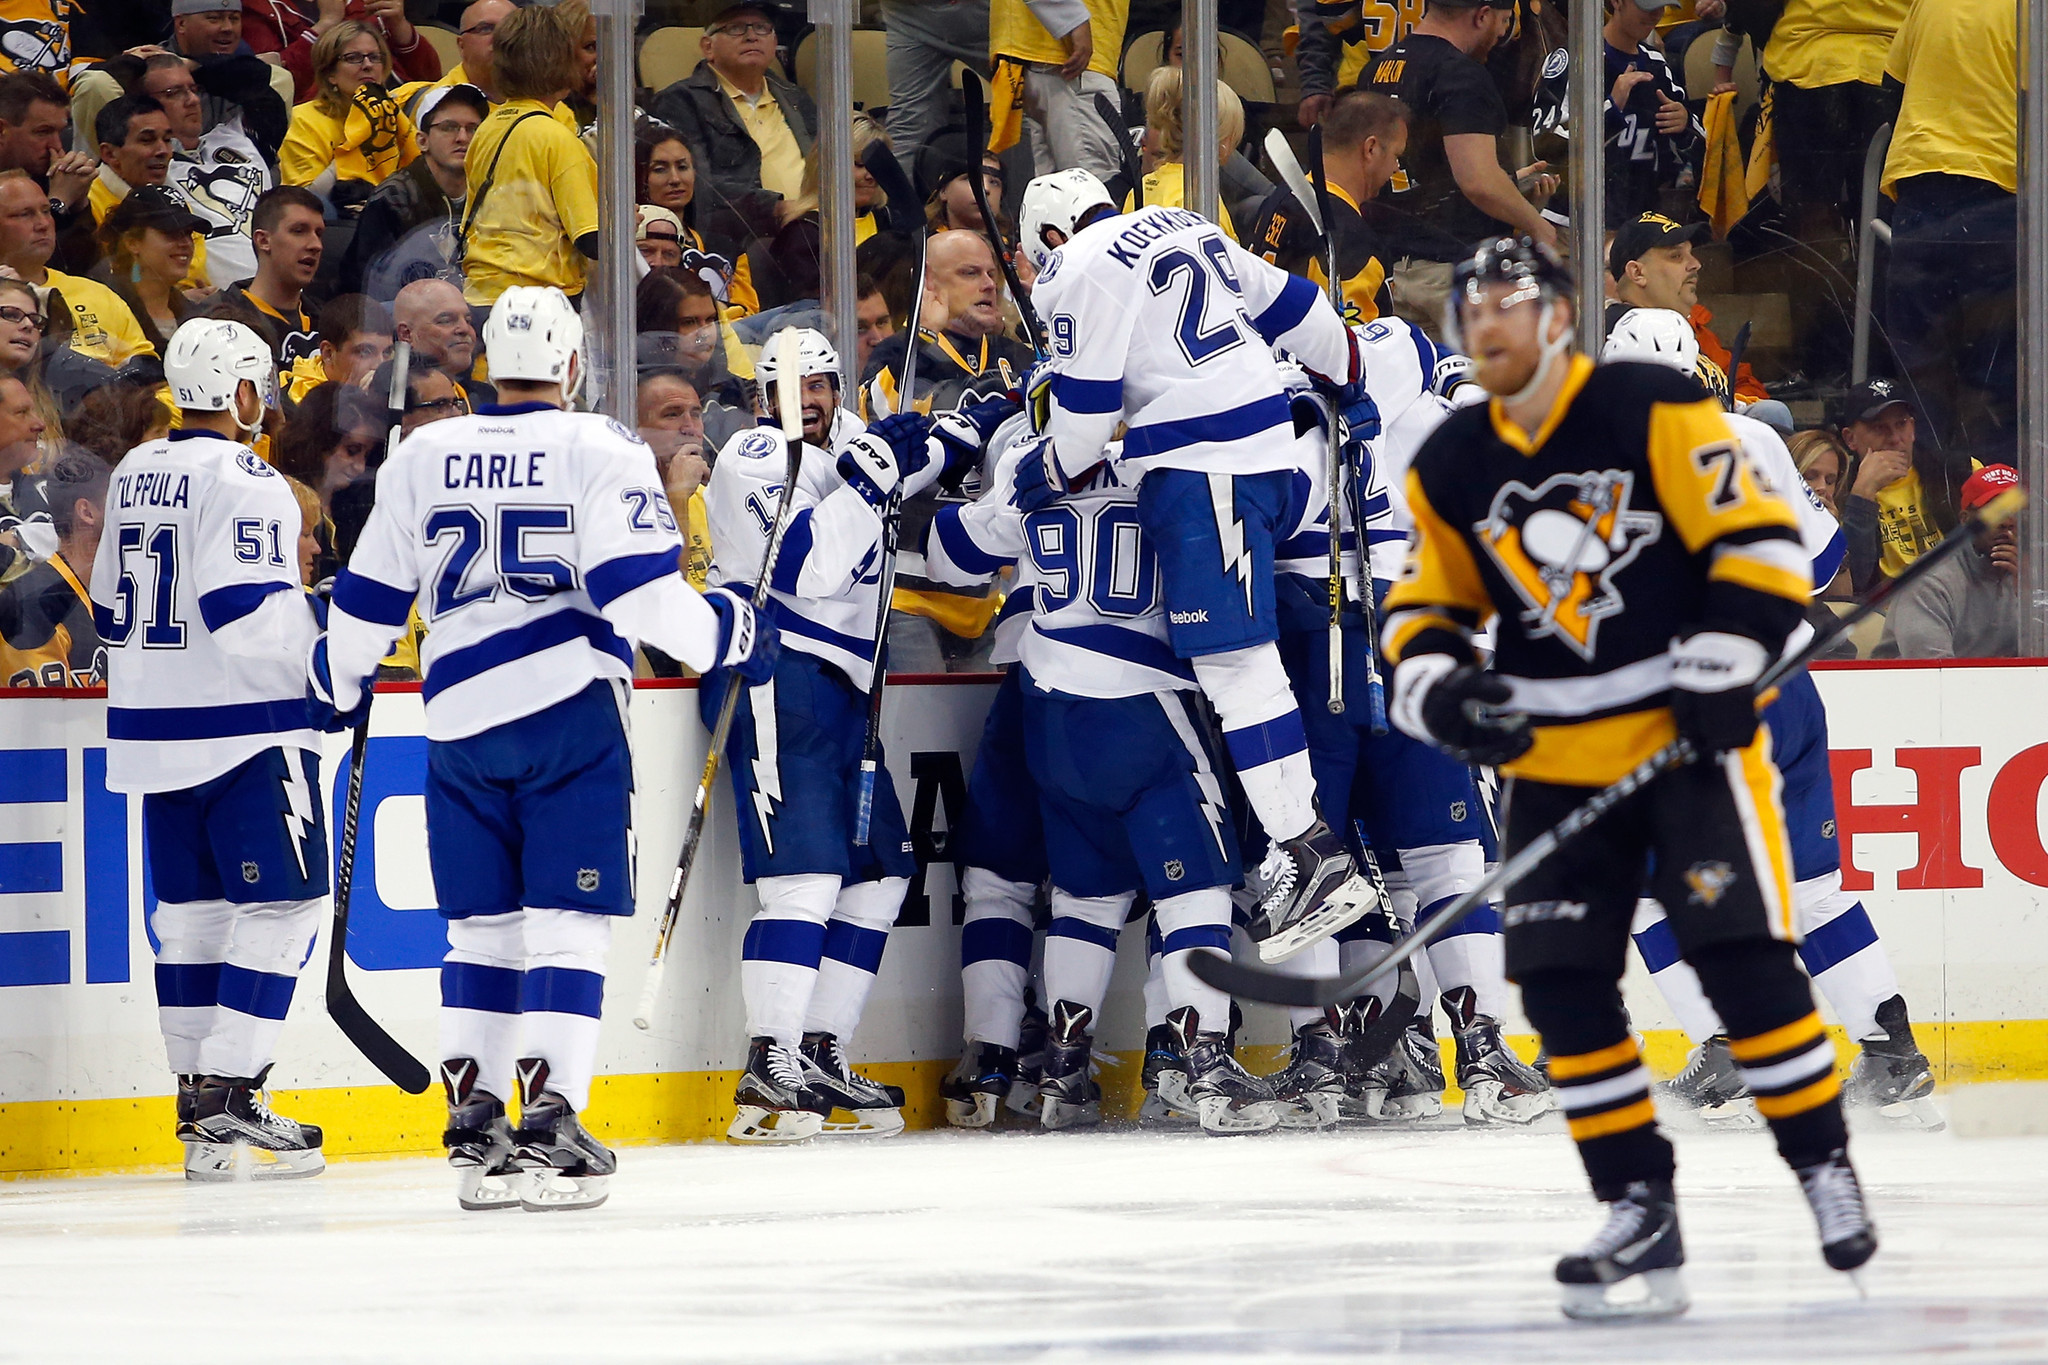 Ct-lightning-penguins-game-5-20160522